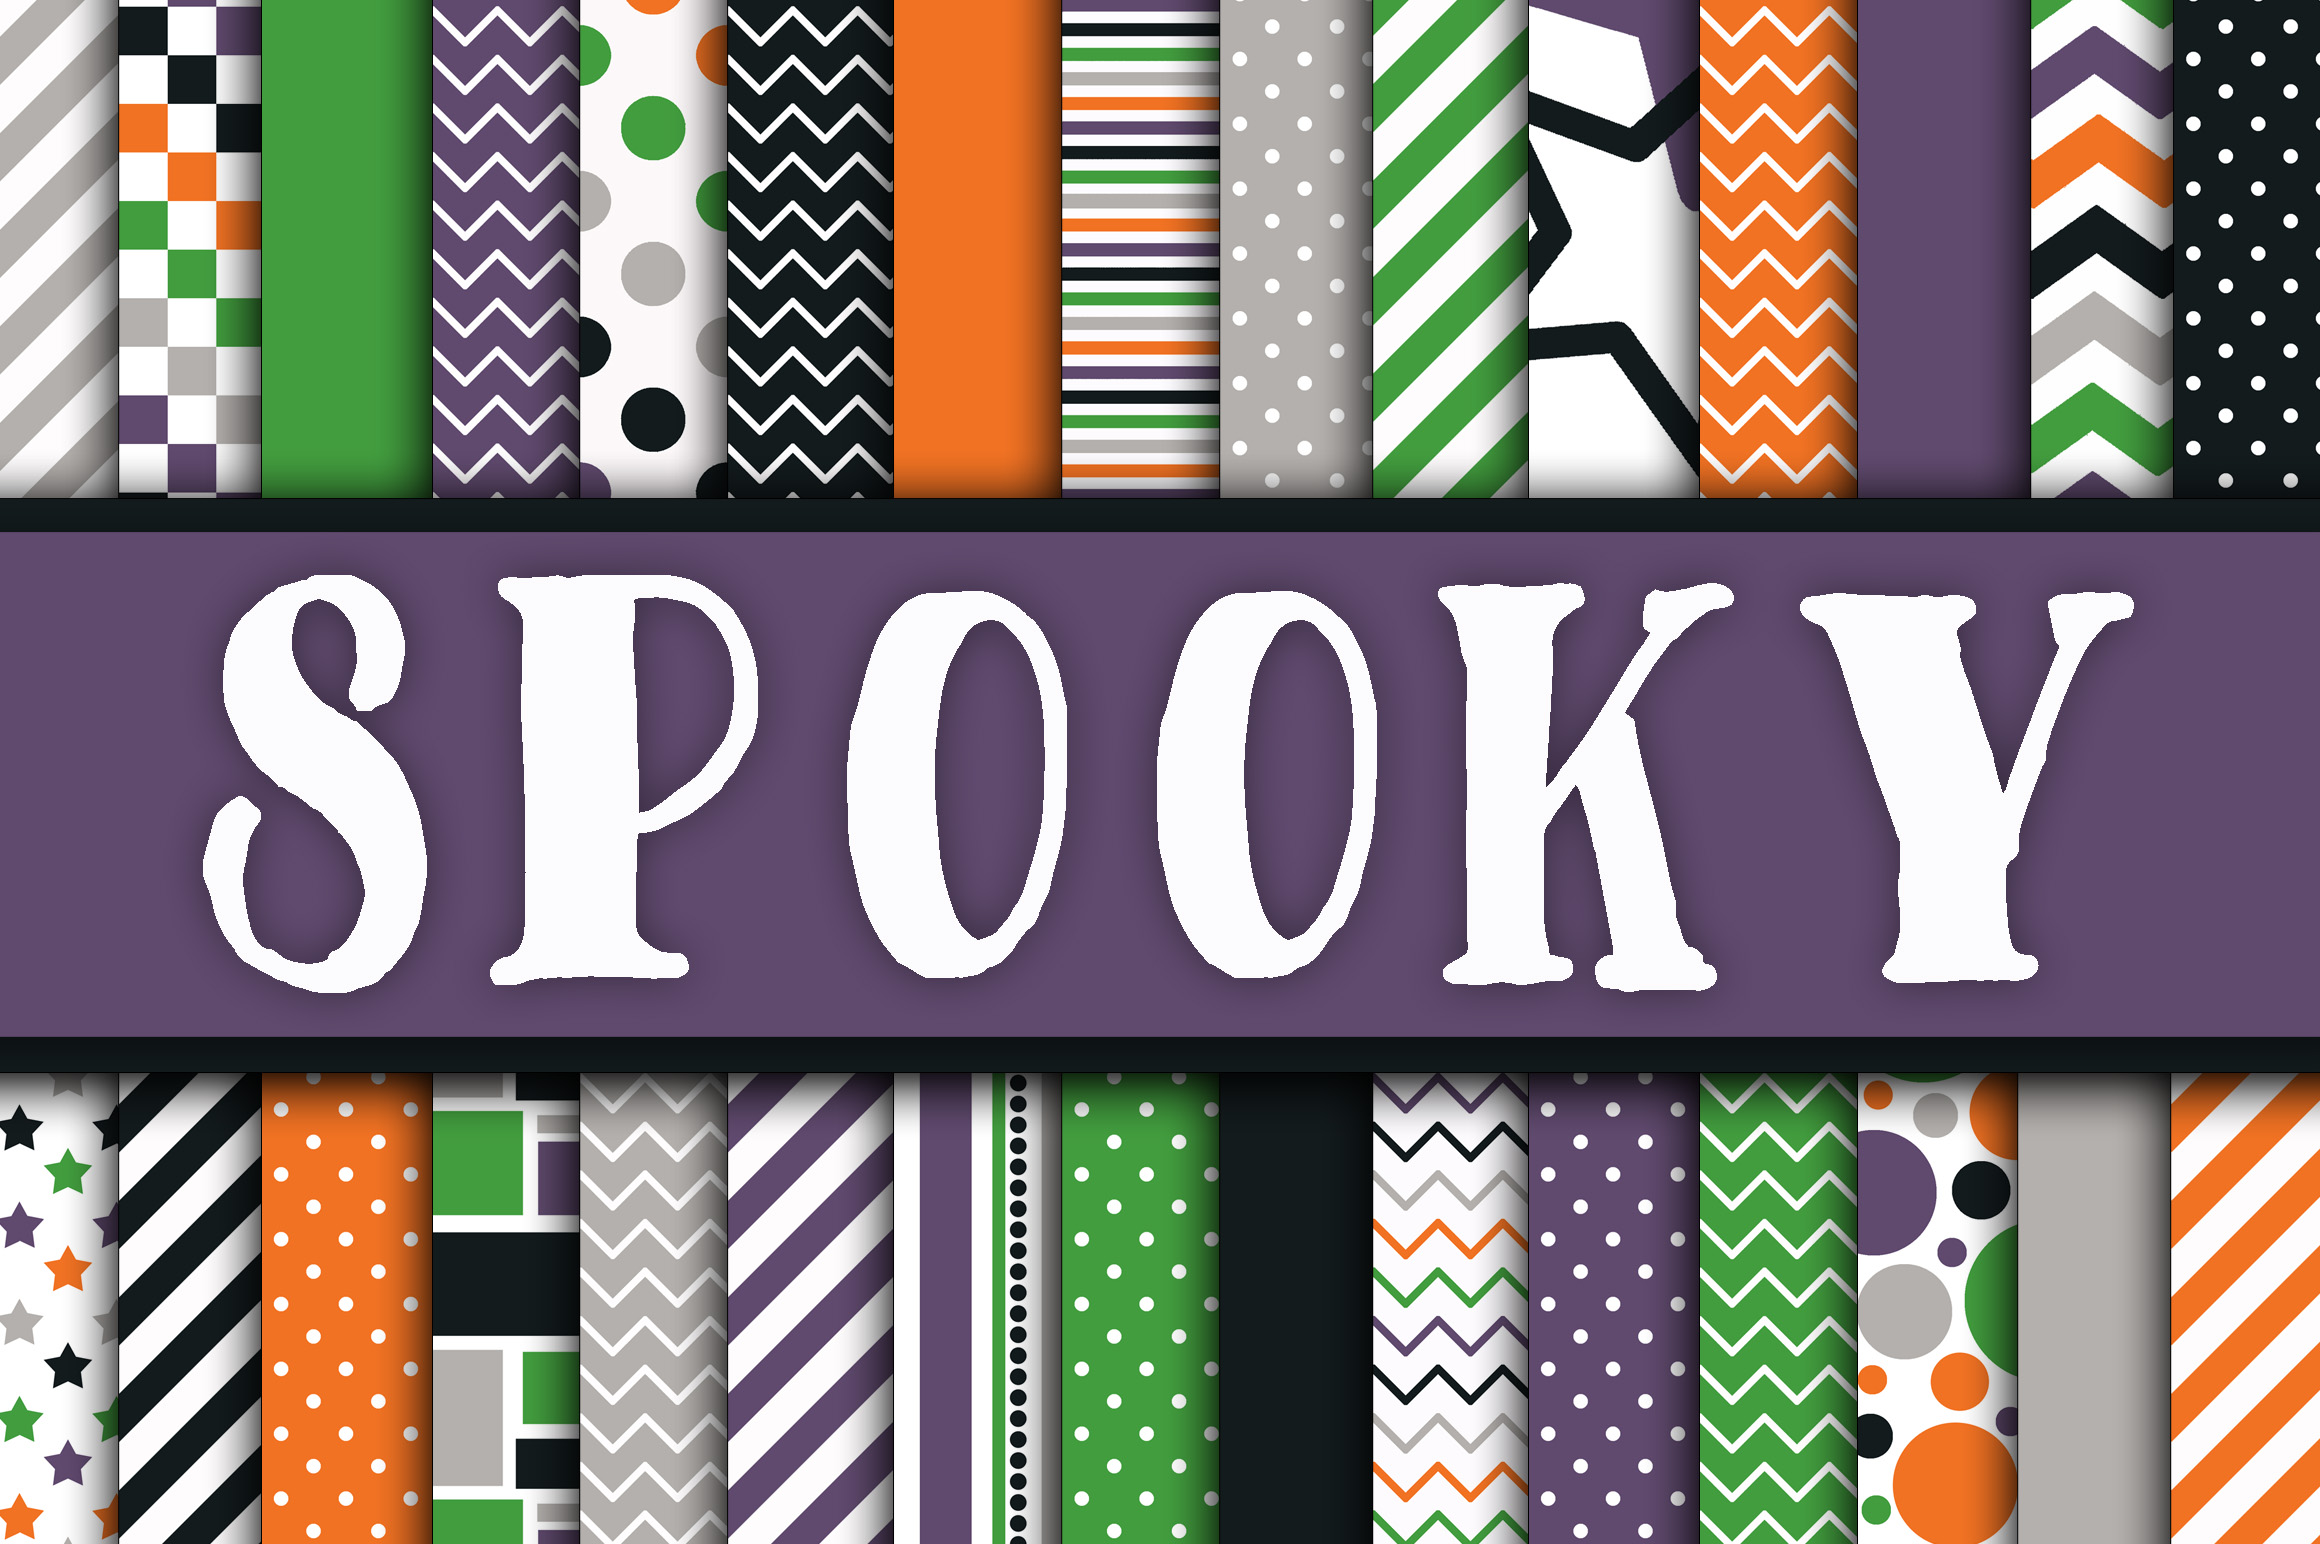 Spooky Digital Papers Graphic By oldmarketdesigns Image 1